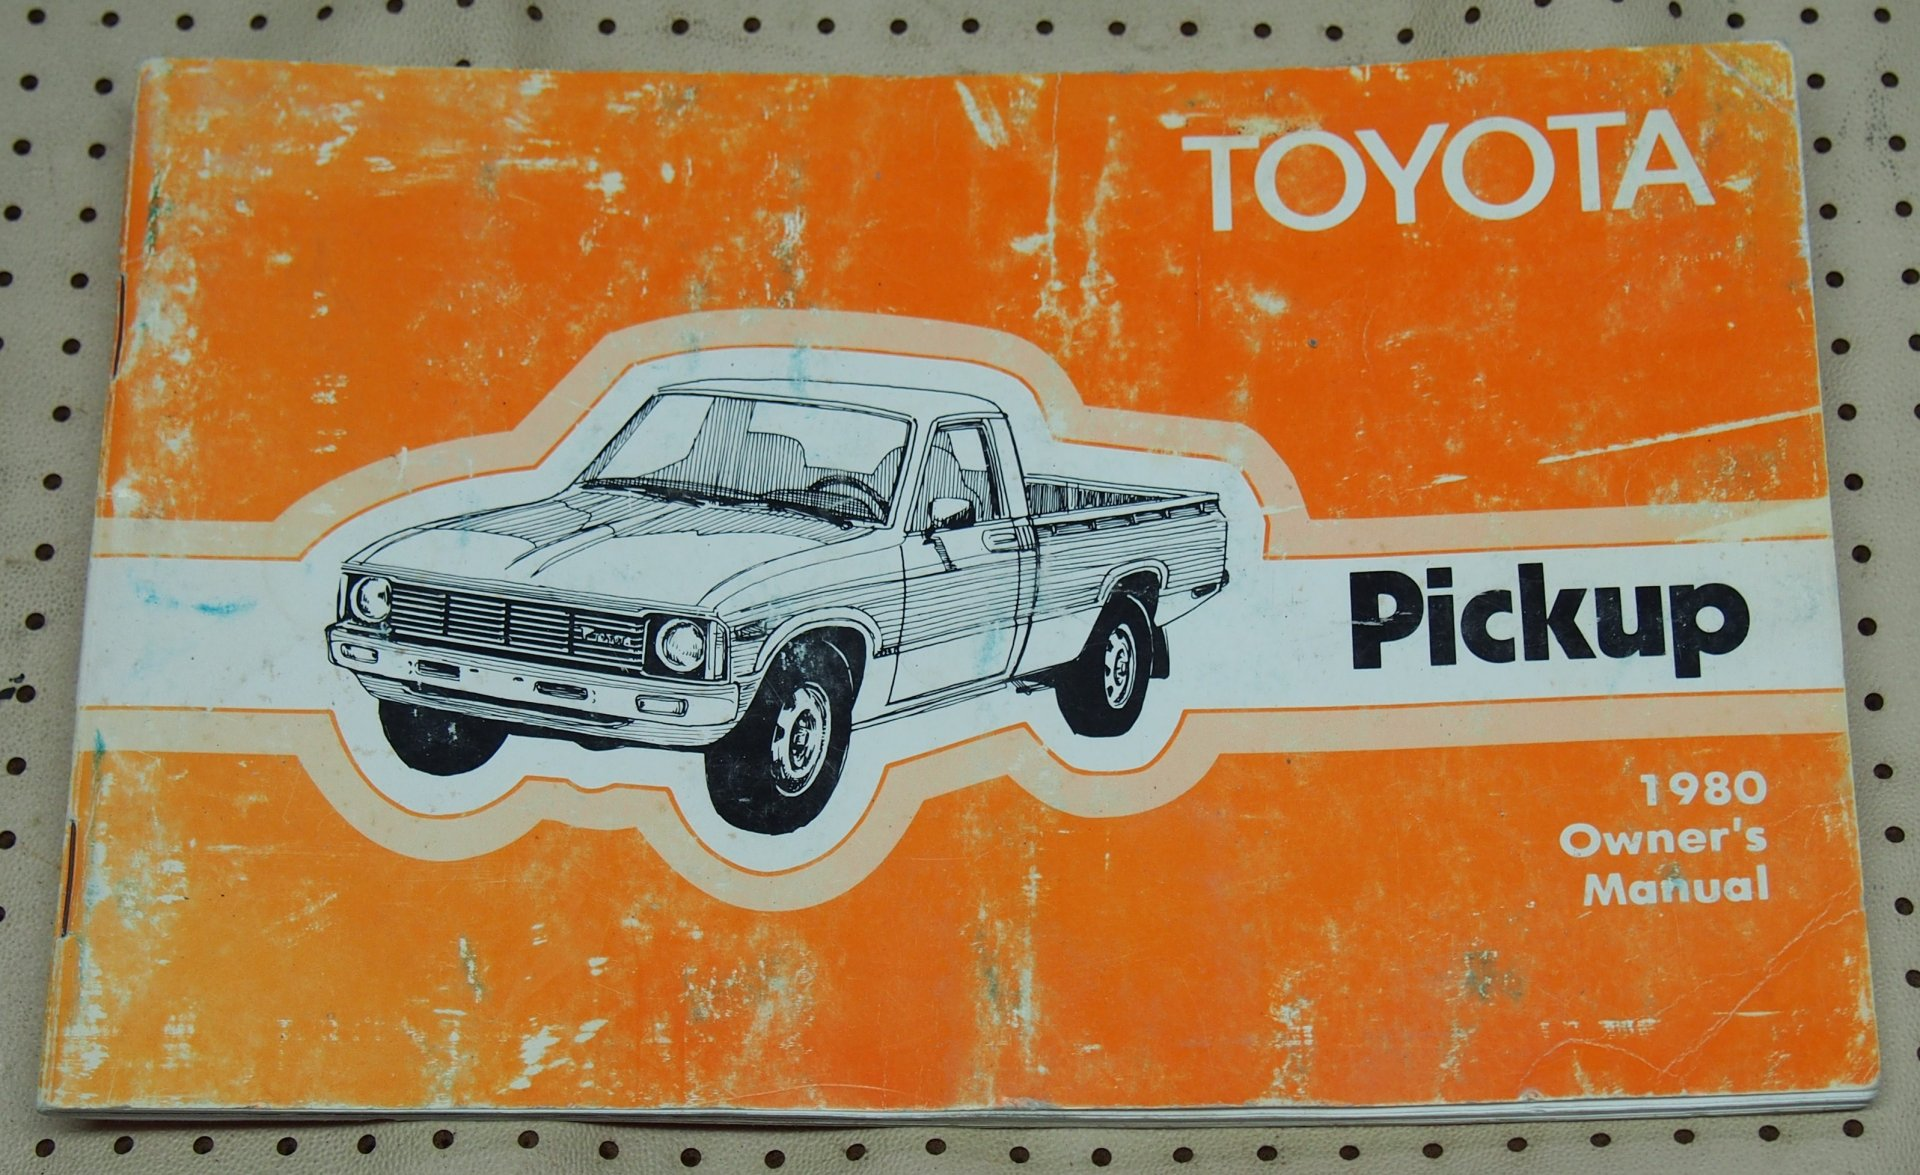 Toyota Truck Owners Manual Trusted Schematic Diagrams 1992 4runner For Sale Manuals 1980 Pickup And 87 Rh Forum Ih8mud Com 1983 1994